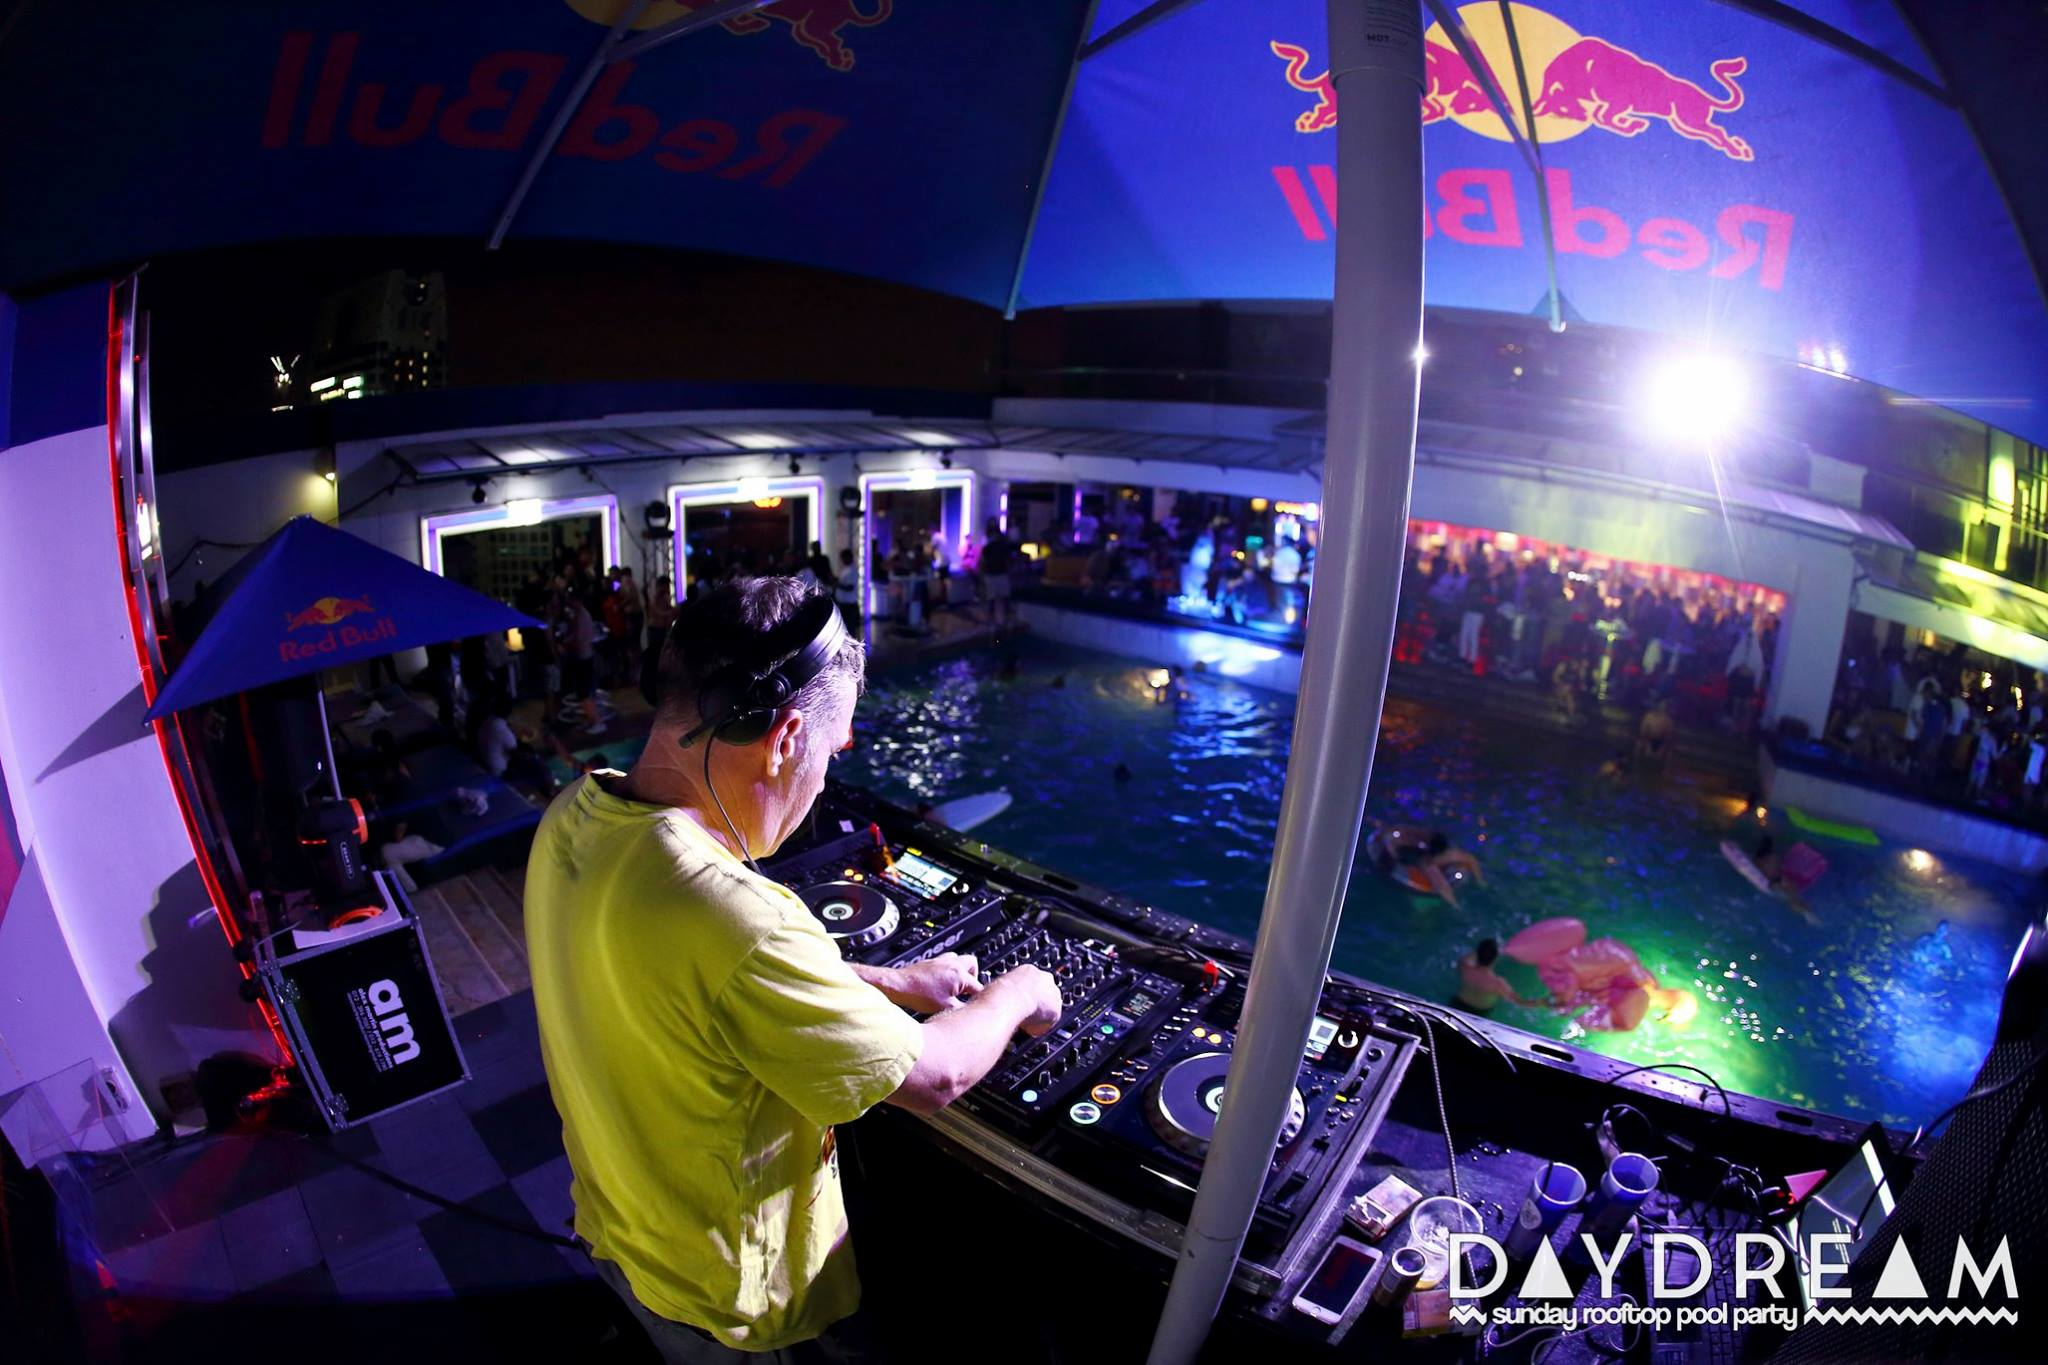 Day Dream Pool Party KL Kuala Lumpur at Luna bar